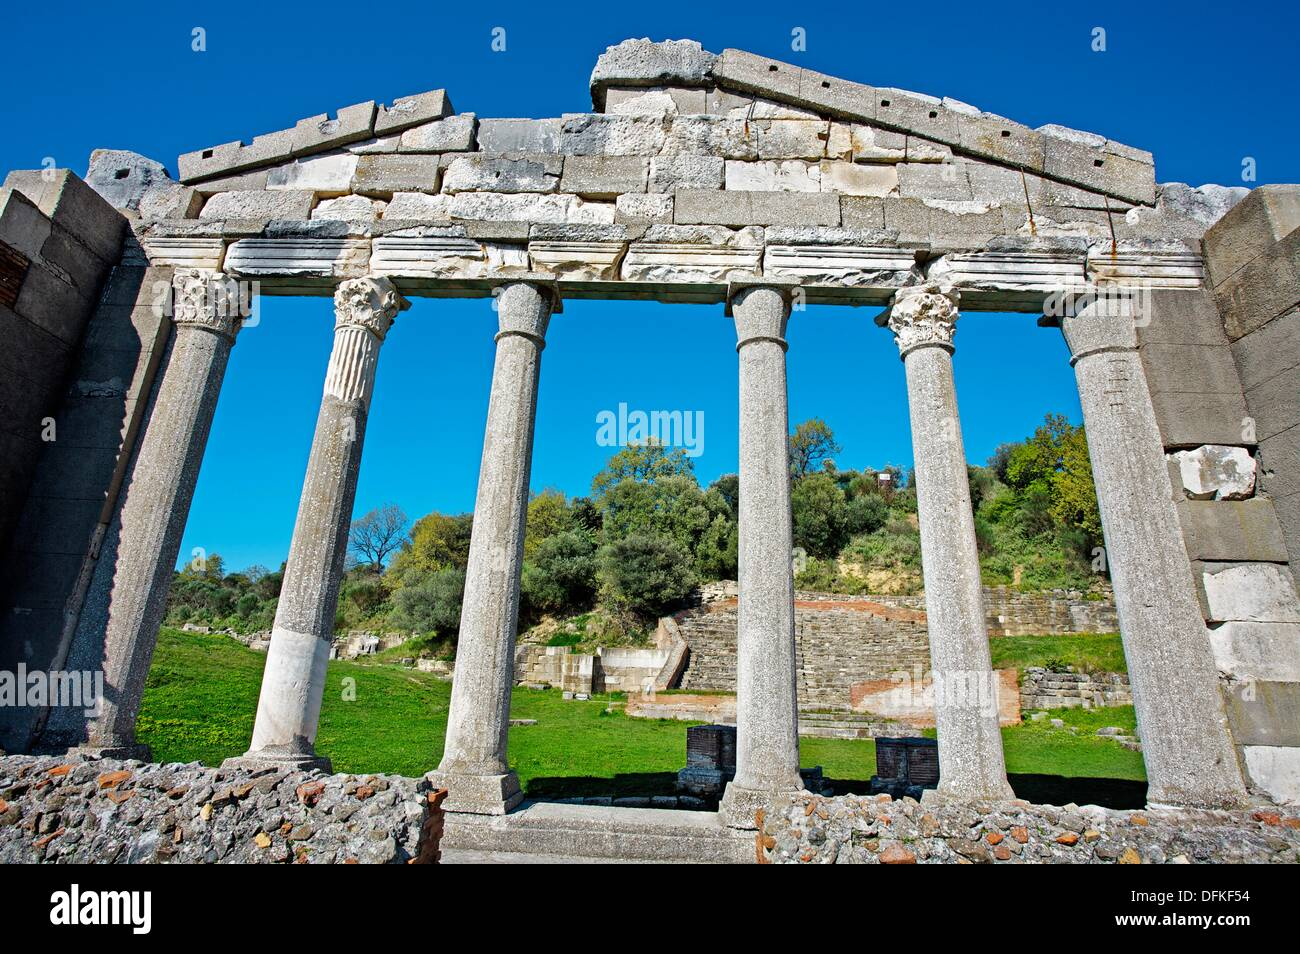 Monument of the Agonothetes. Apollonia ancient Greek. Archeological excavation. Albania. - Stock Image